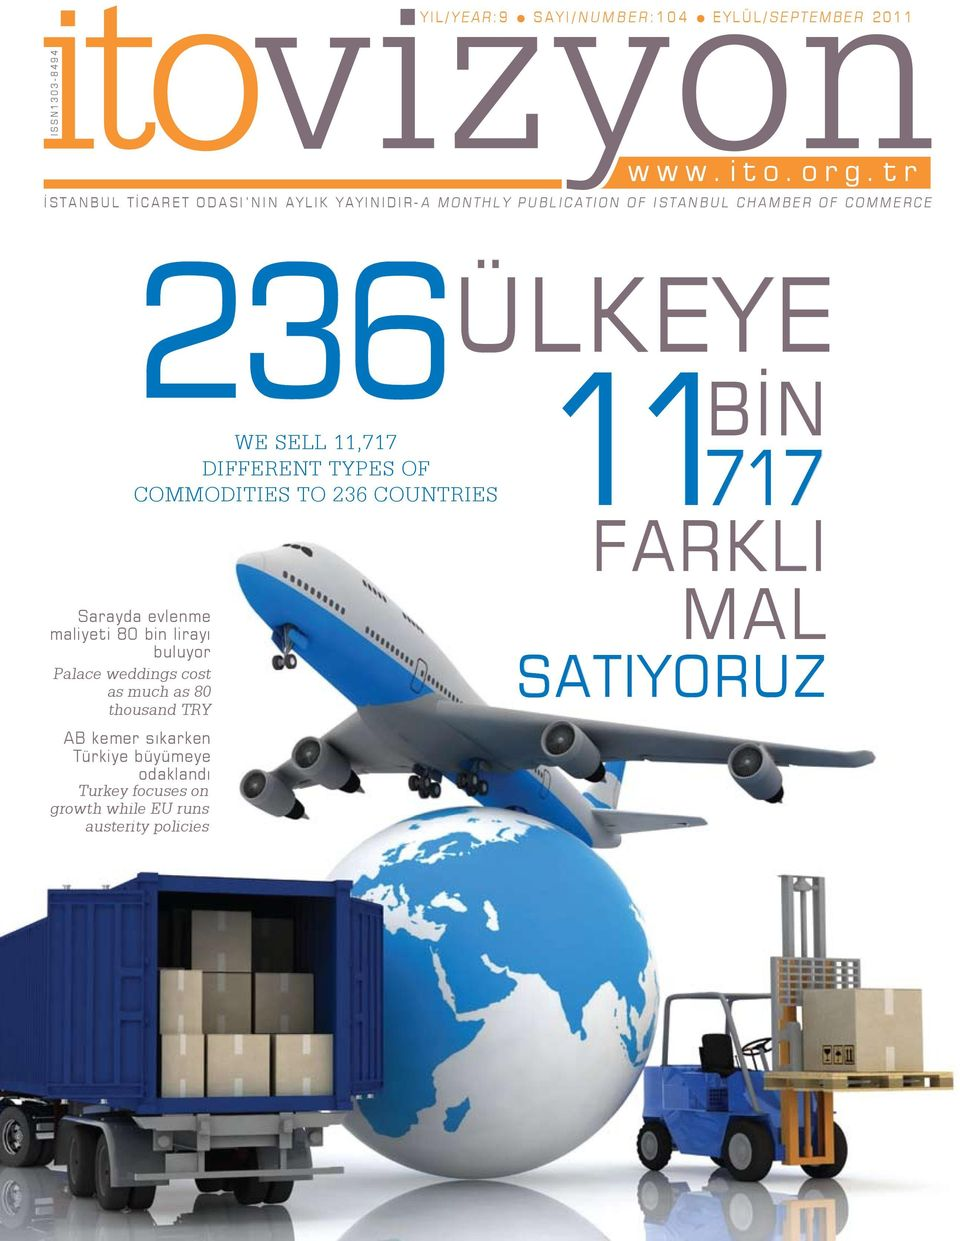 sell 11,717 different types of commodities to 236 countries 11 717 FARKLI Sarayda evlenme maliyeti 80 bin lirayı